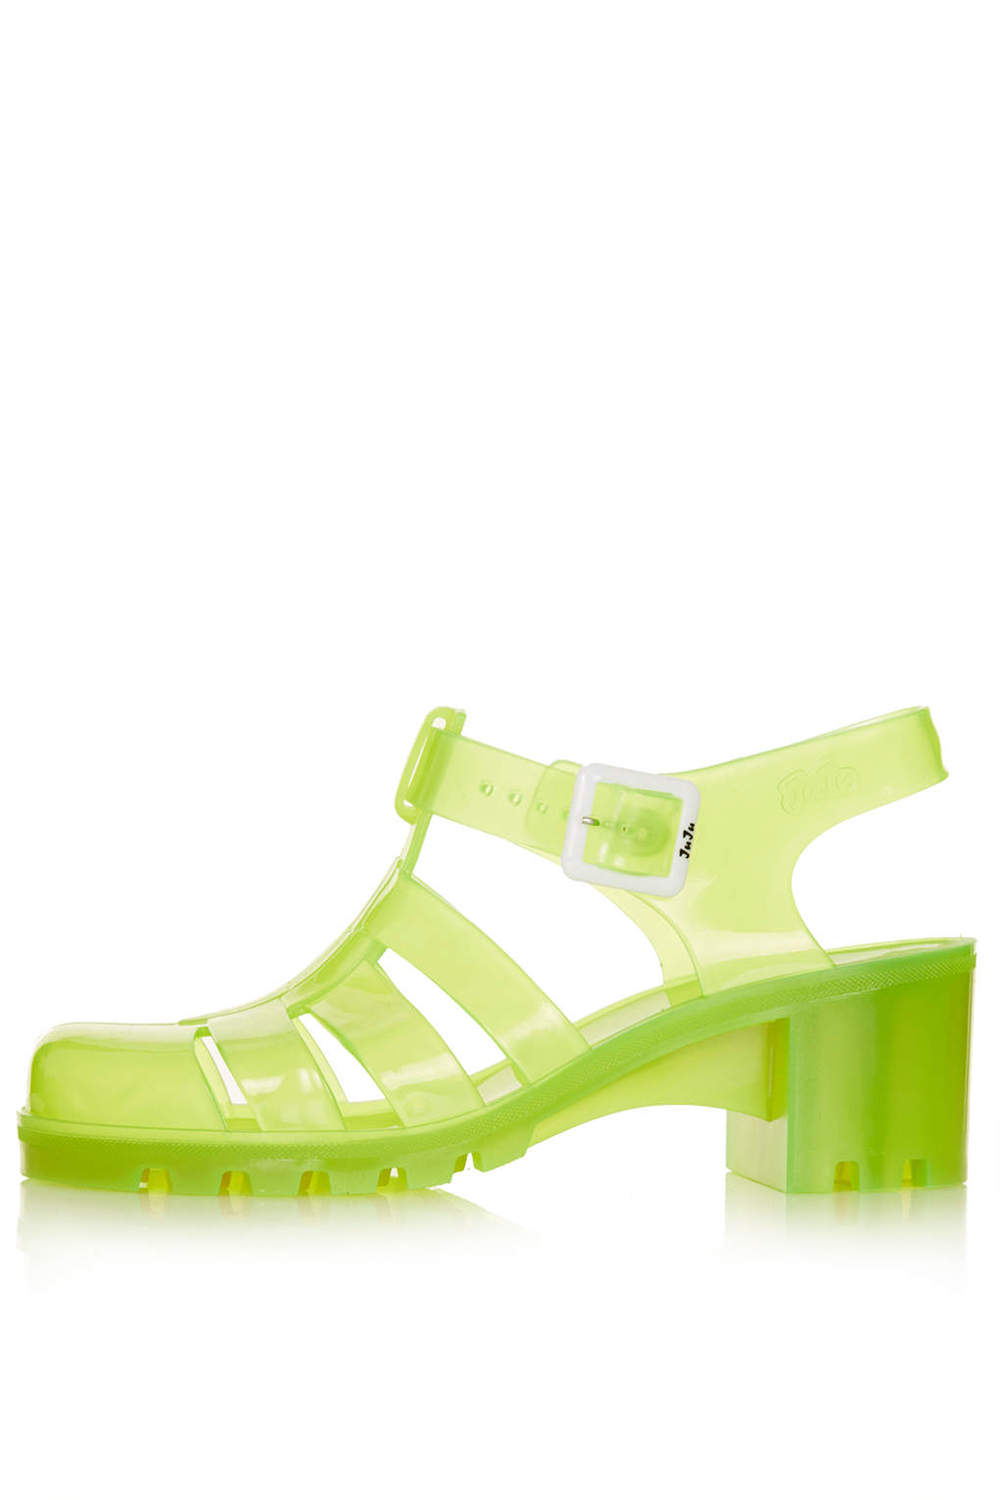 NINA Fluro Jelly Sandals. Topshop. $45. Just to be clear. I'm not telling you not to wear the heels with socks trend, just not those socks with these heels.